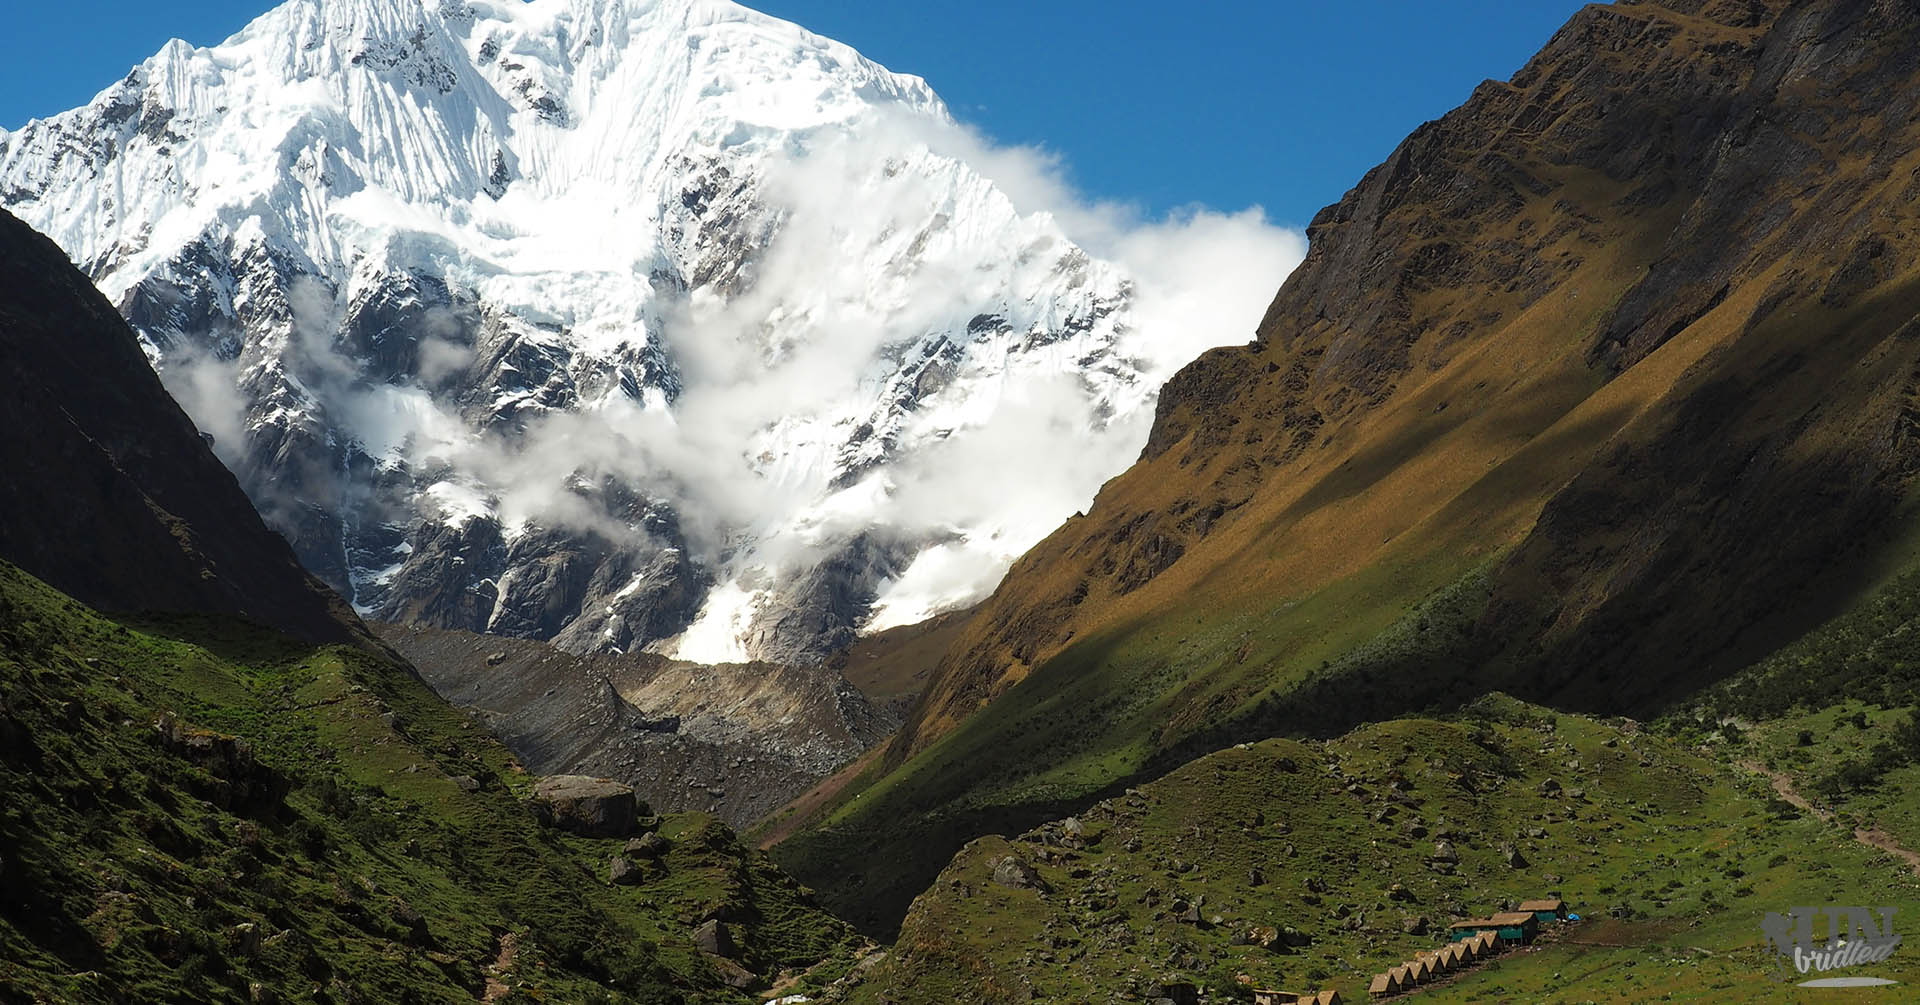 View of the first camp and Mount Salkantay from the Salkantay Trek to Machu Picchu